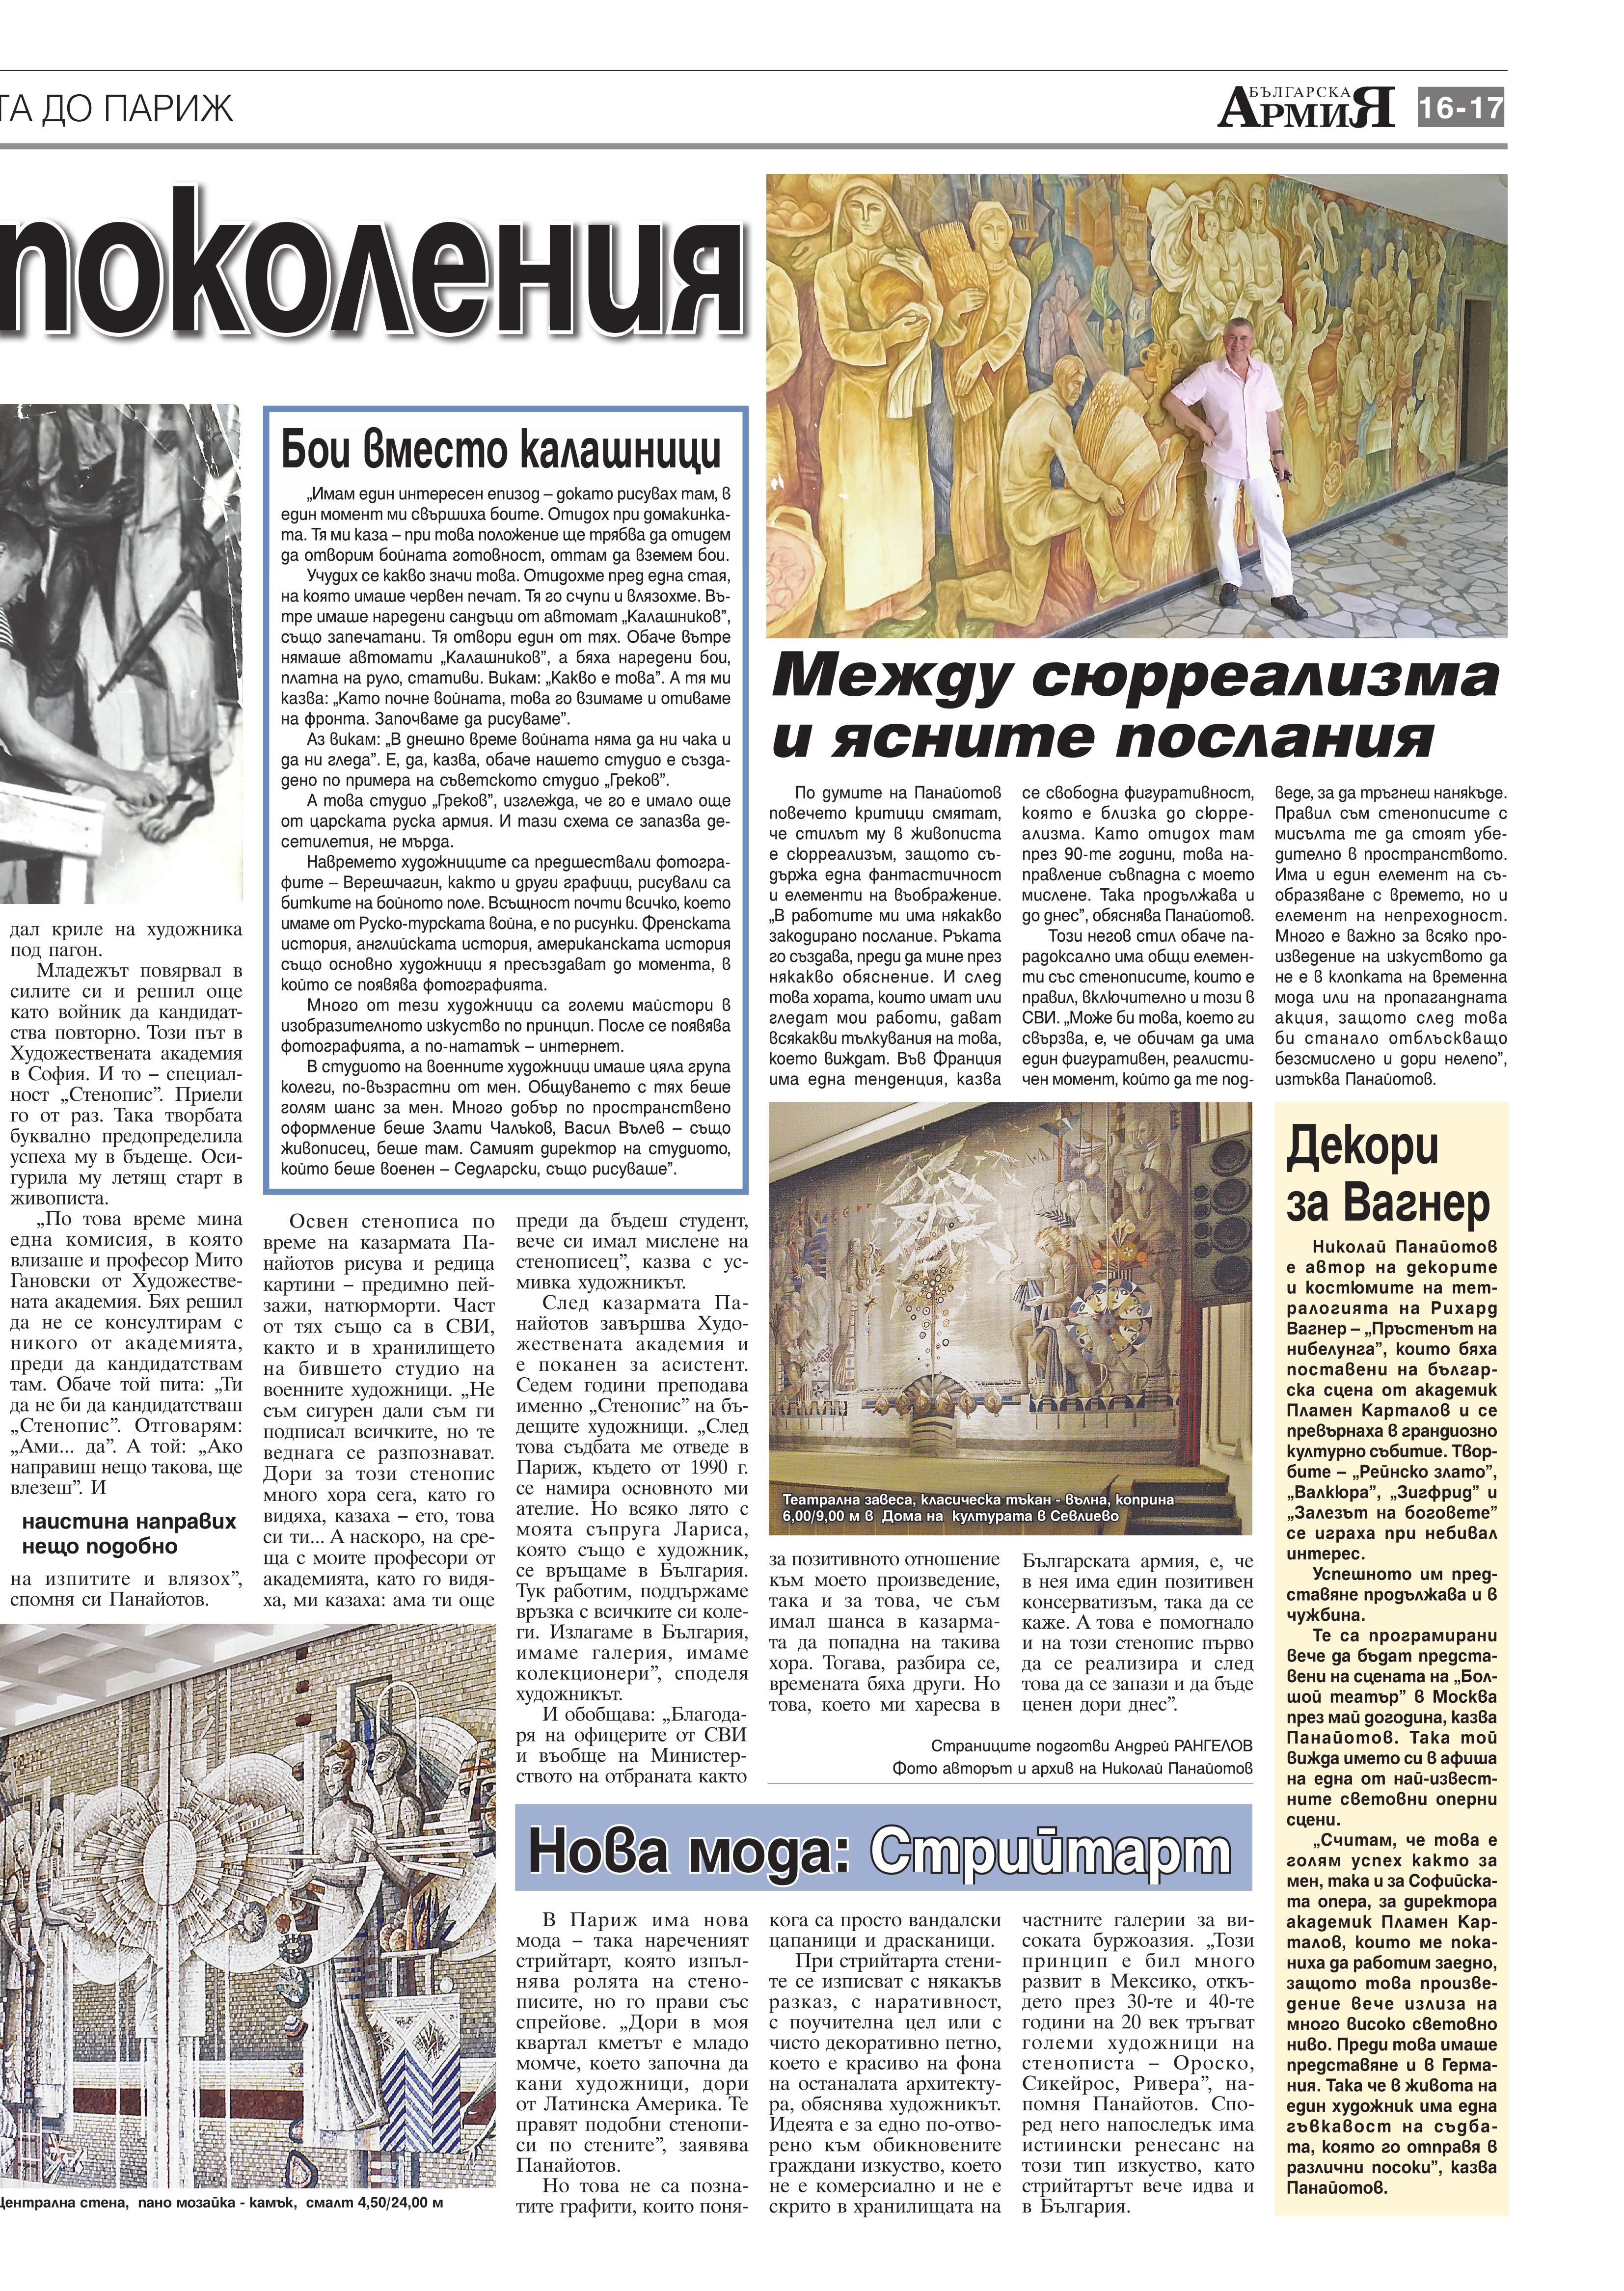 http://armymedia.bg/wp-content/uploads/2015/06/17.page1_-28.jpg